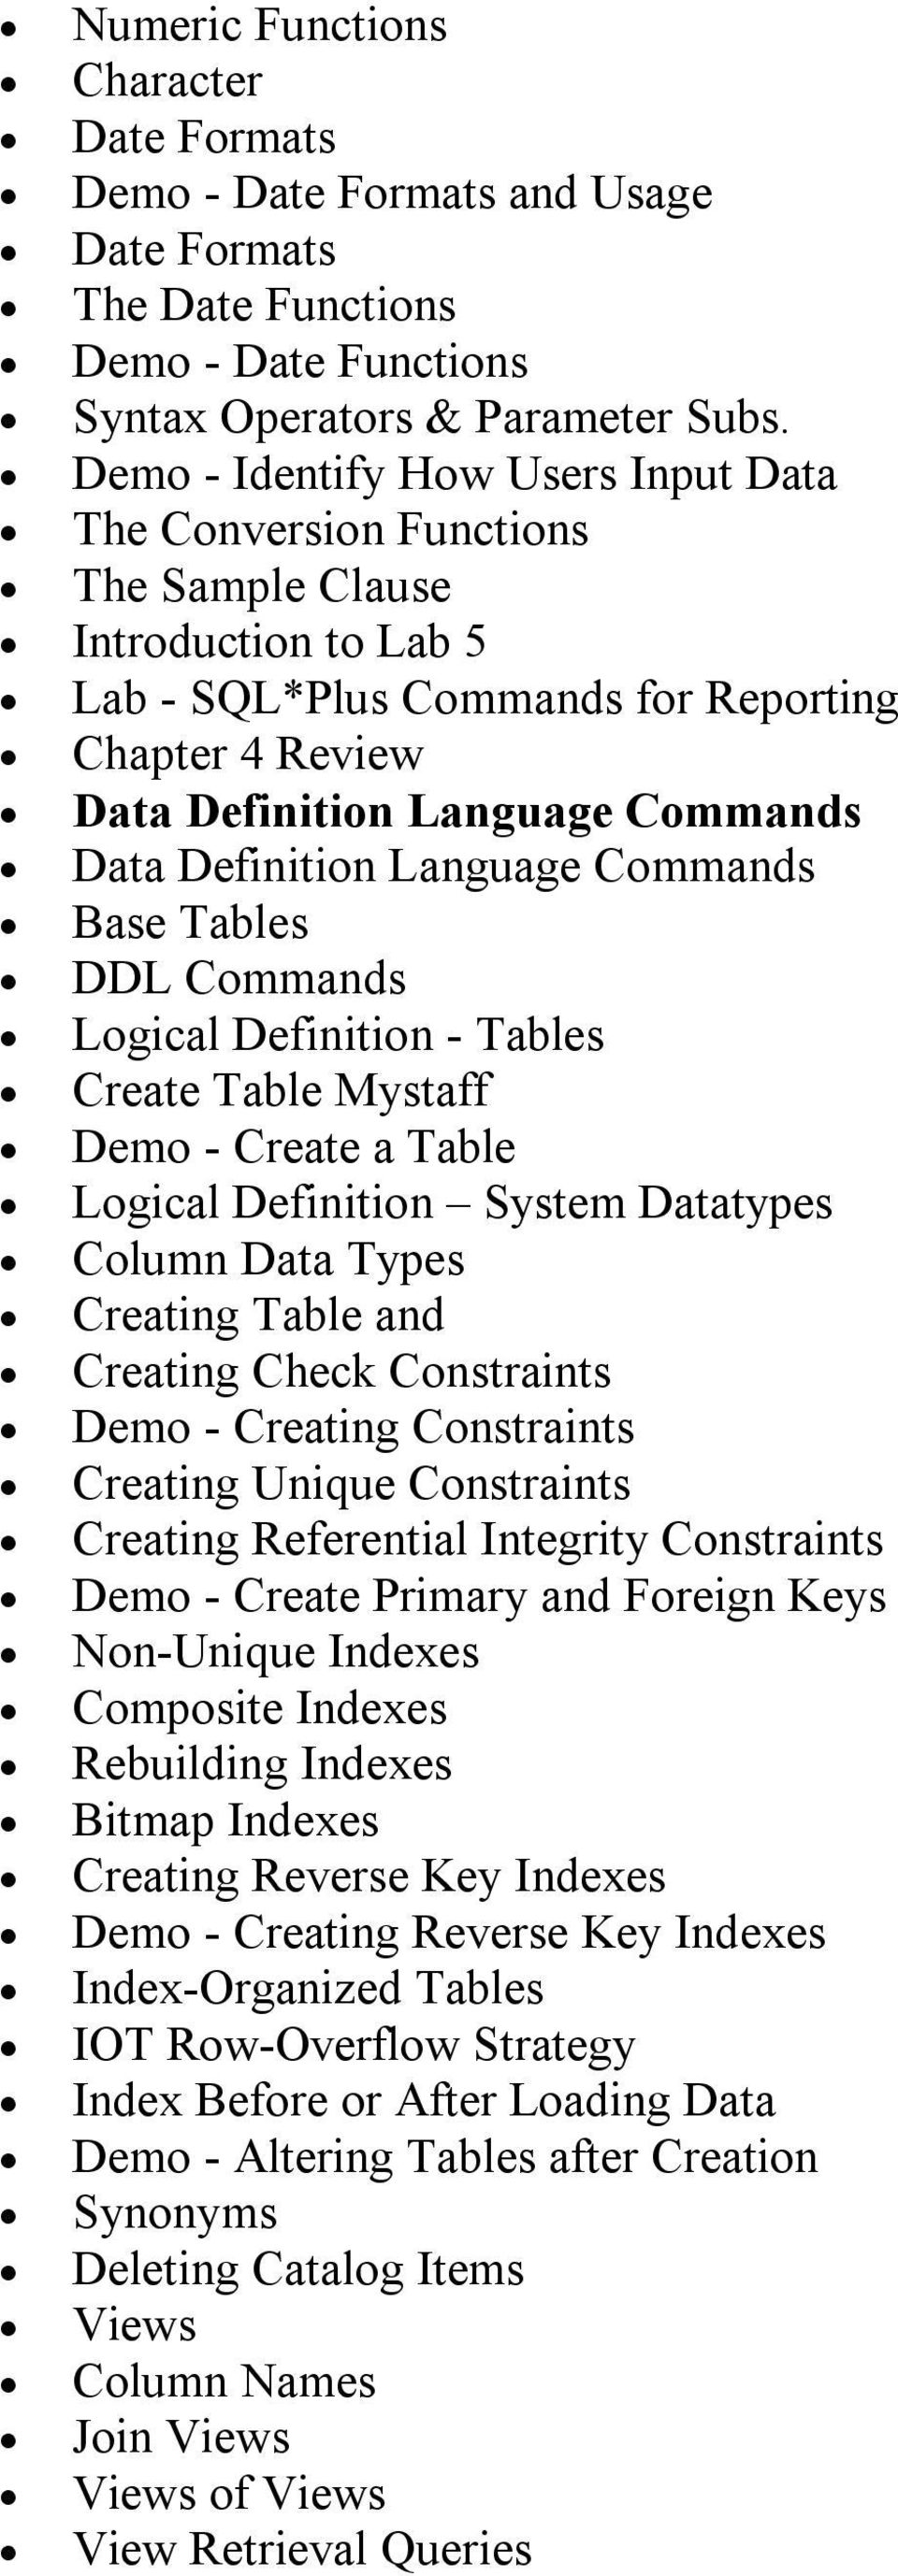 Definition Language Commands Base Tables DDL Commands Logical Definition Tables Create Table Mystaff Demo Create a Table Logical Definition System Datatypes Column Data Types Creating Table and